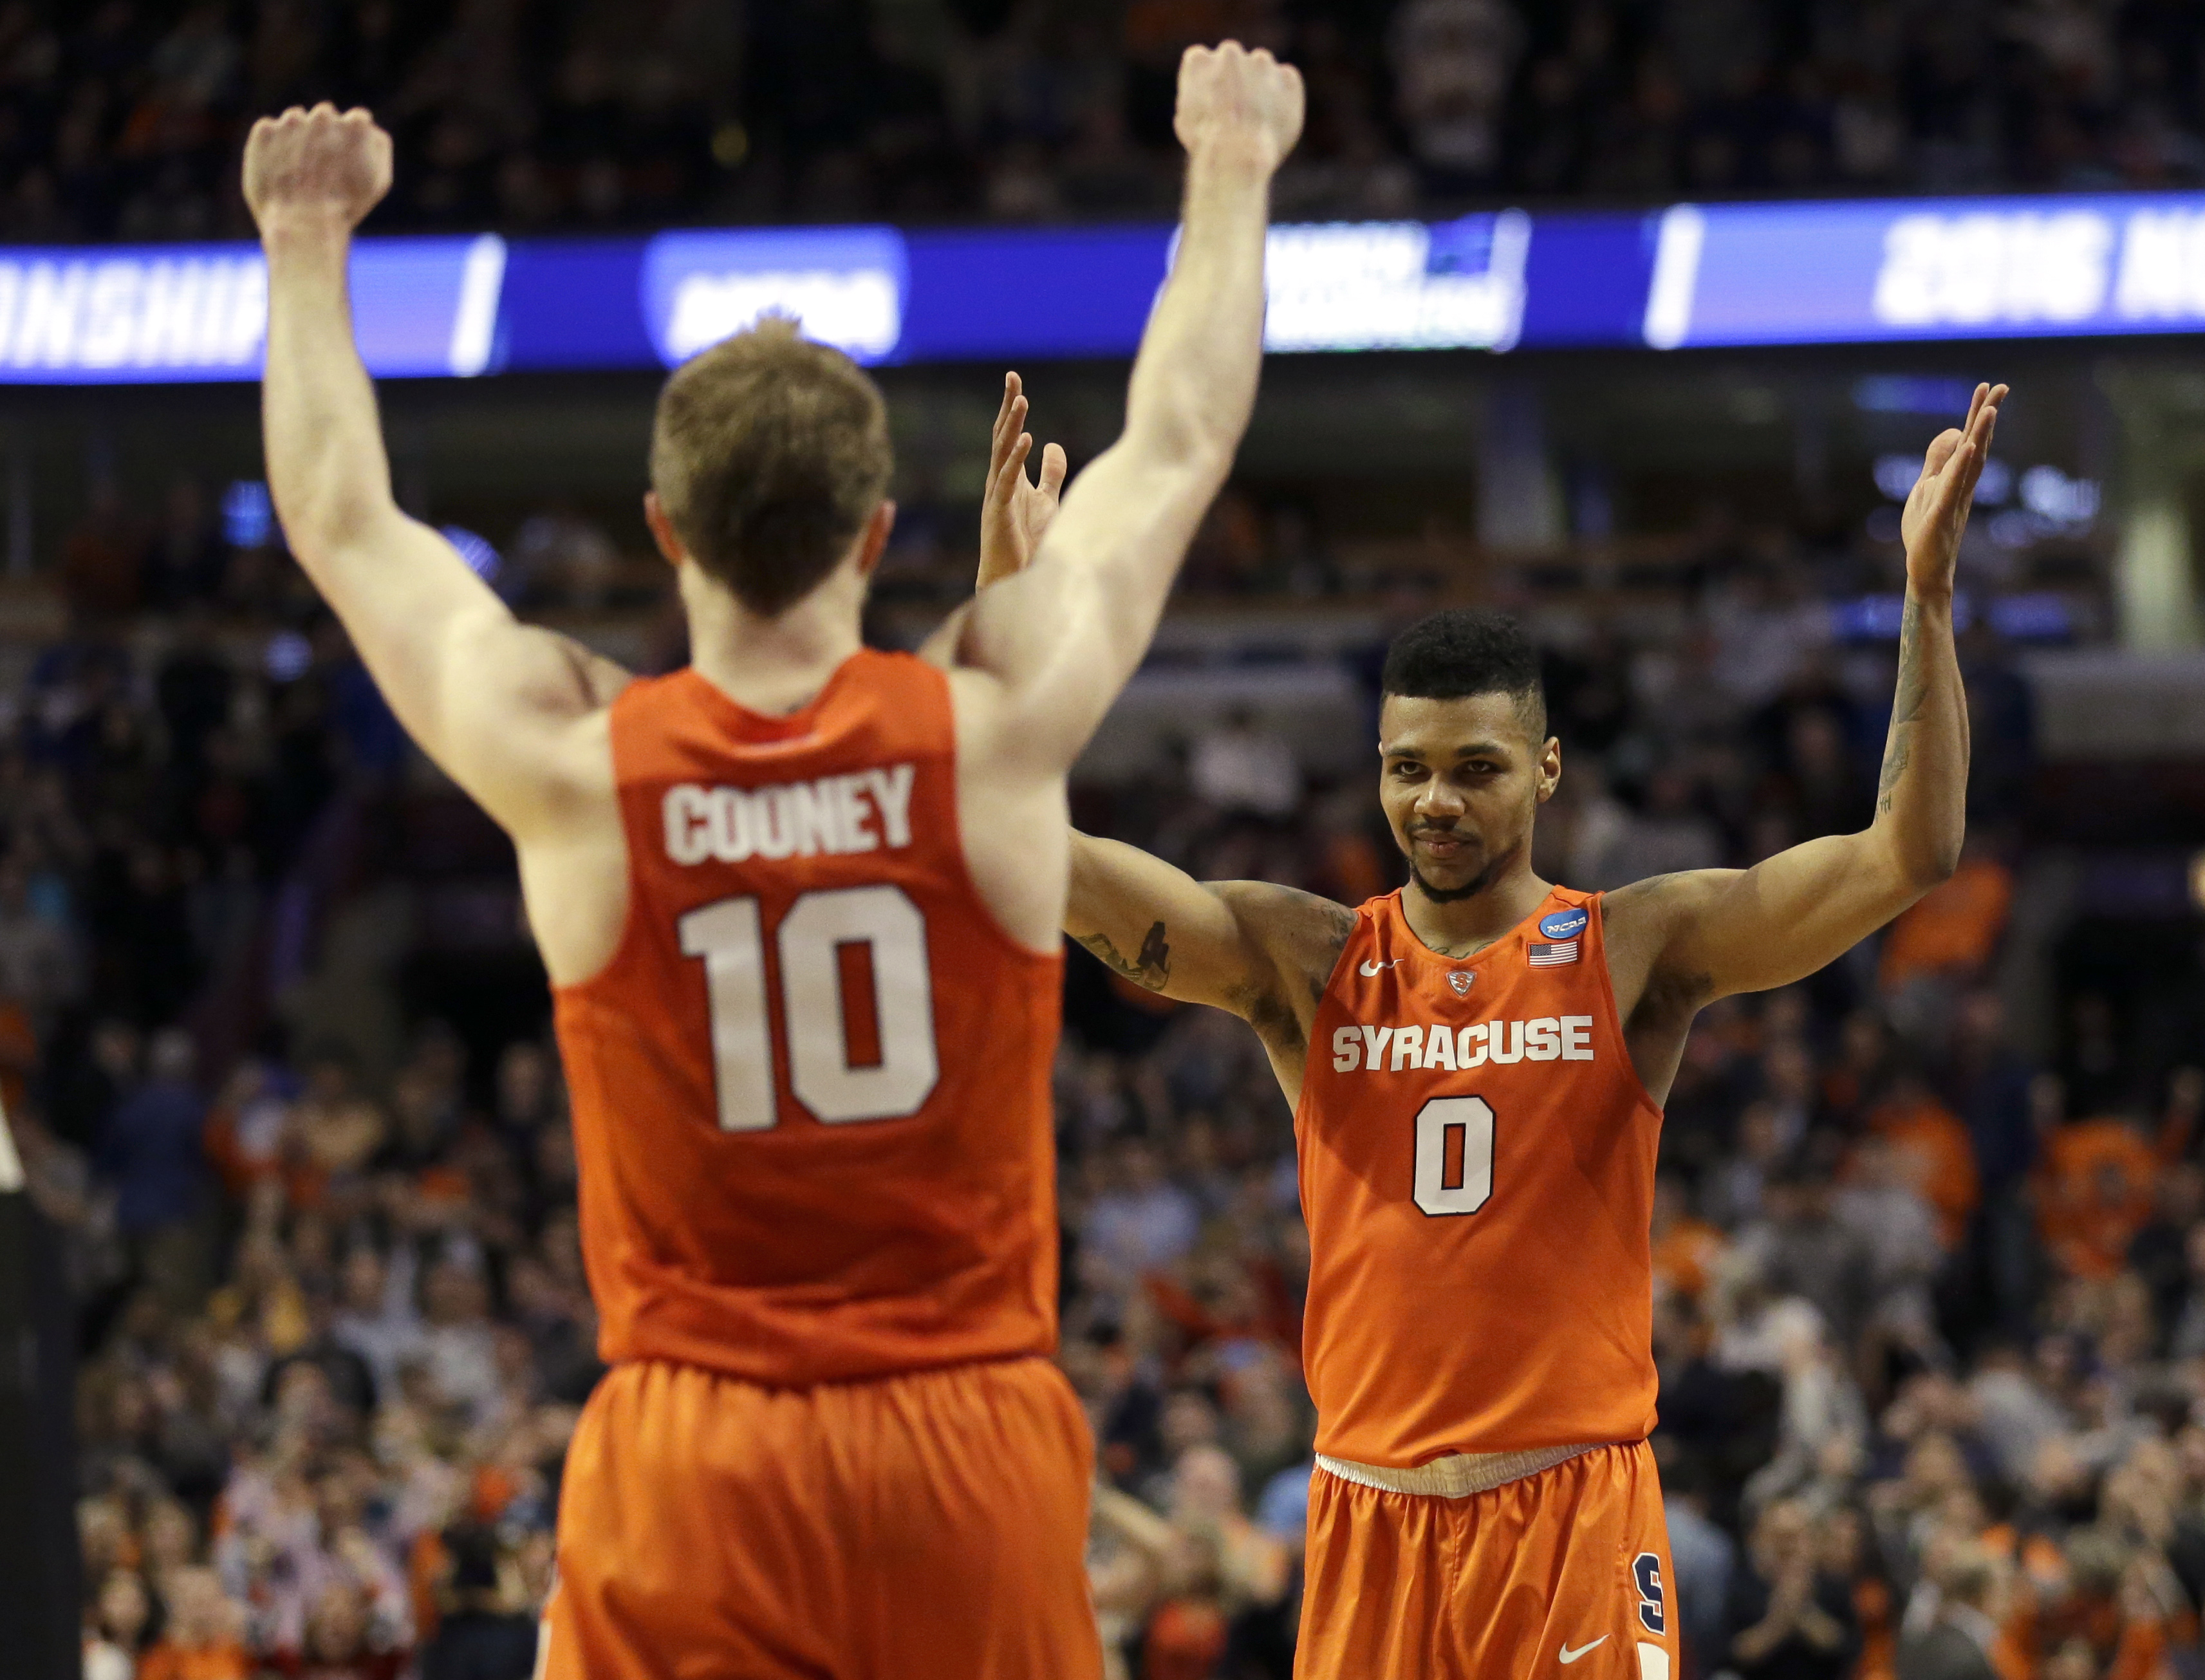 Syracuse's Trevor Cooney (10) and Michael Gbinije (0) celebrate in the closing seconds of a college basketball game against Virginia in the regional finals of the NCAA Tournament, Sunday, March 27, 2016, in Chicago. Syracuse won 68-62. (AP Photo/Nam Y. Hu